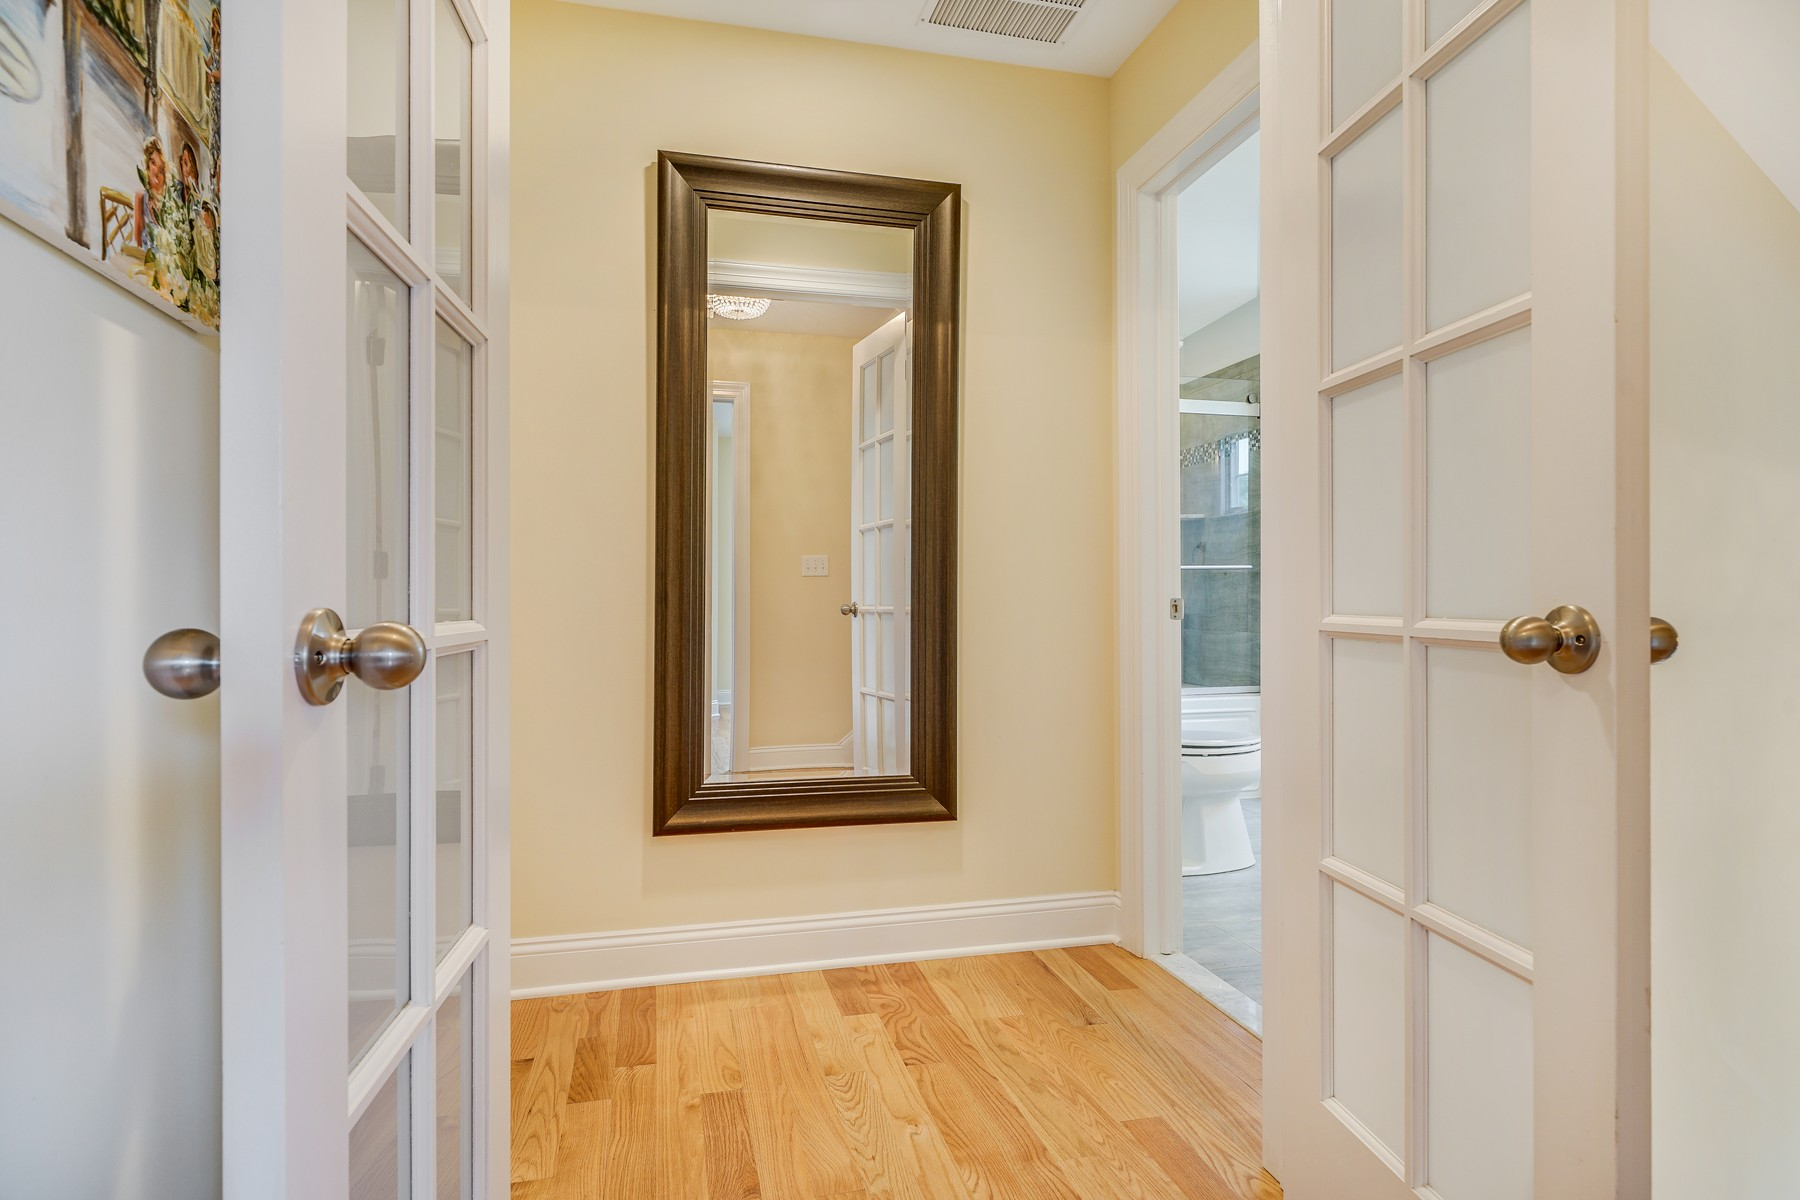 Additional photo for property listing at Urban Chic meets the Jersey Shore 403 Morgan Parkway Brielle, New Jersey 08730 United States